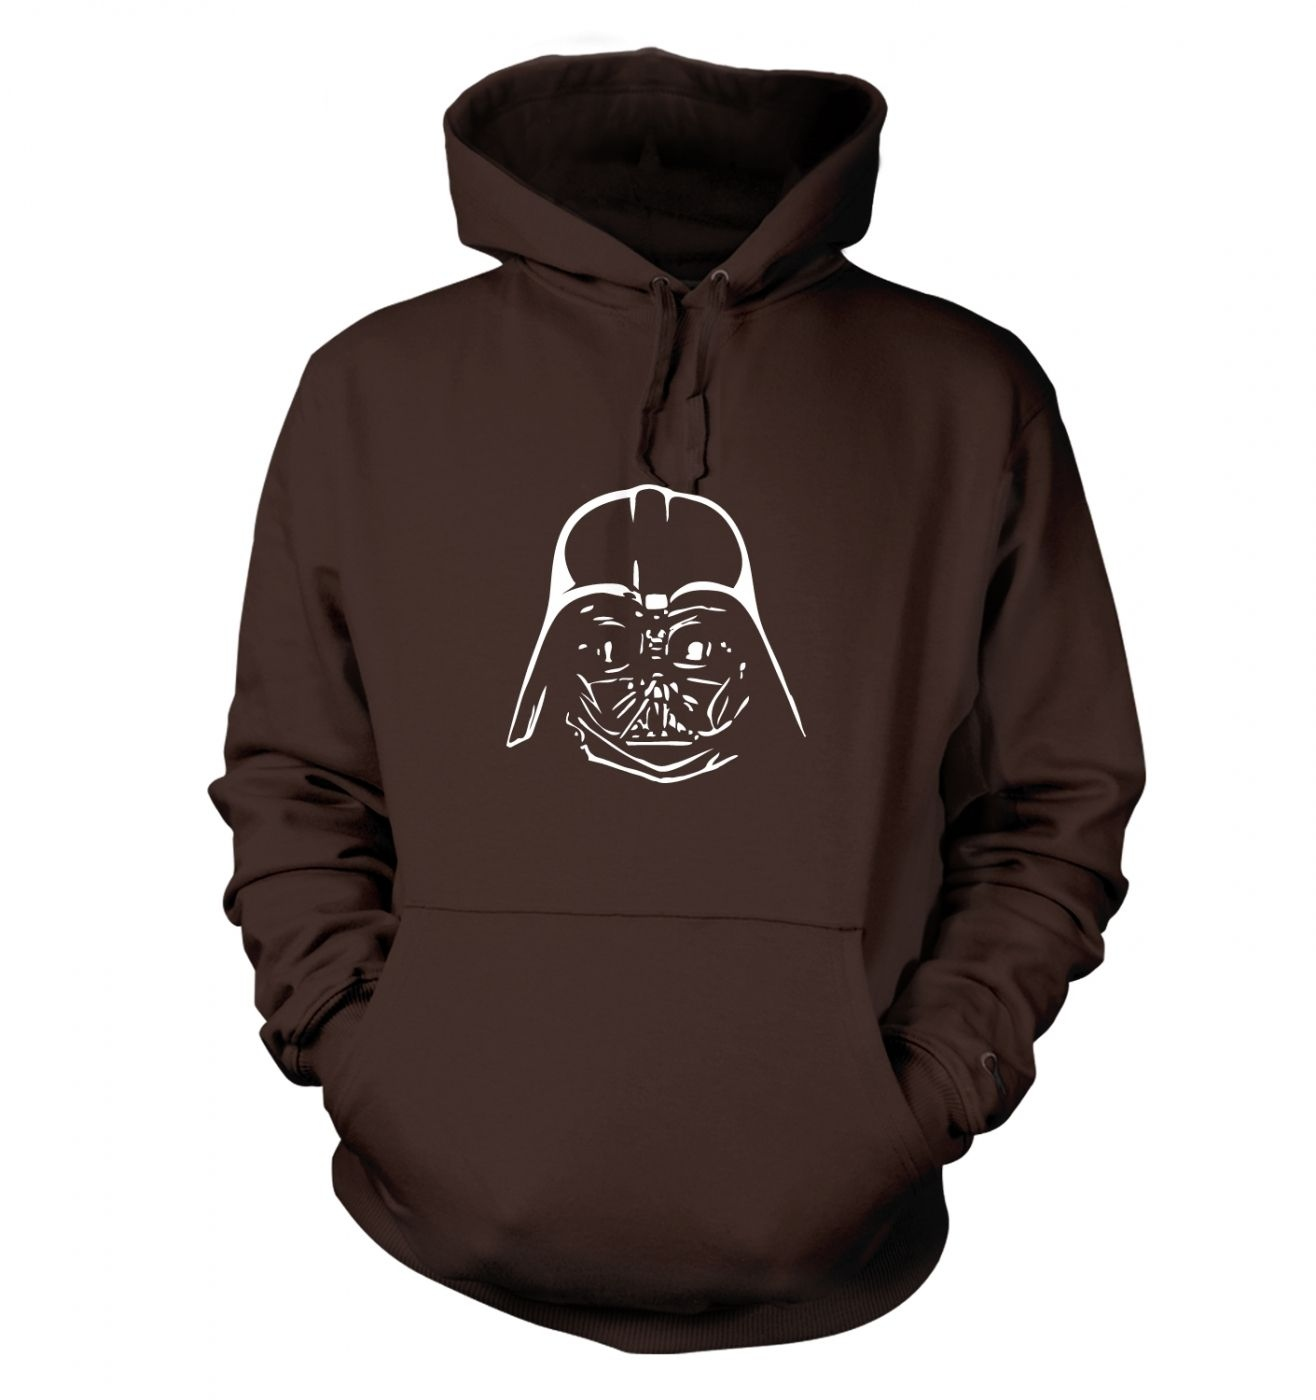 Dark Lord Helmet hoodie - Inspired by Star Wars